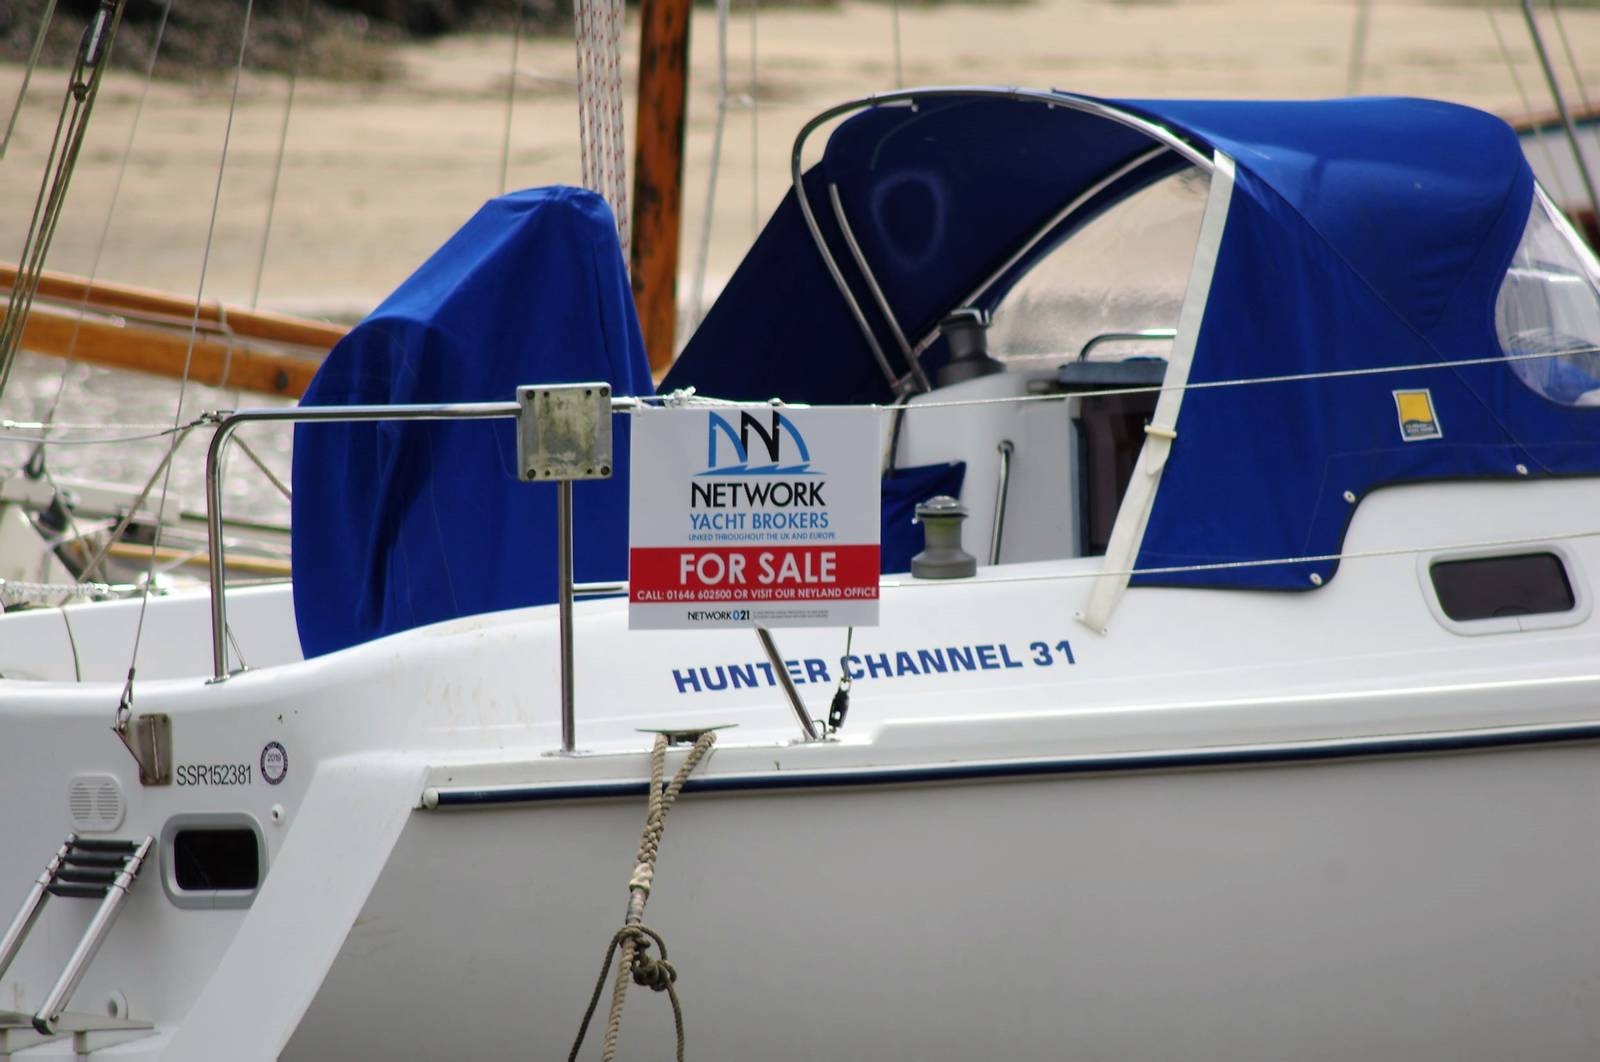 Hunter Channel 31 Yacht For Sale. Yachts.co Neyland Office Tel 01646602500